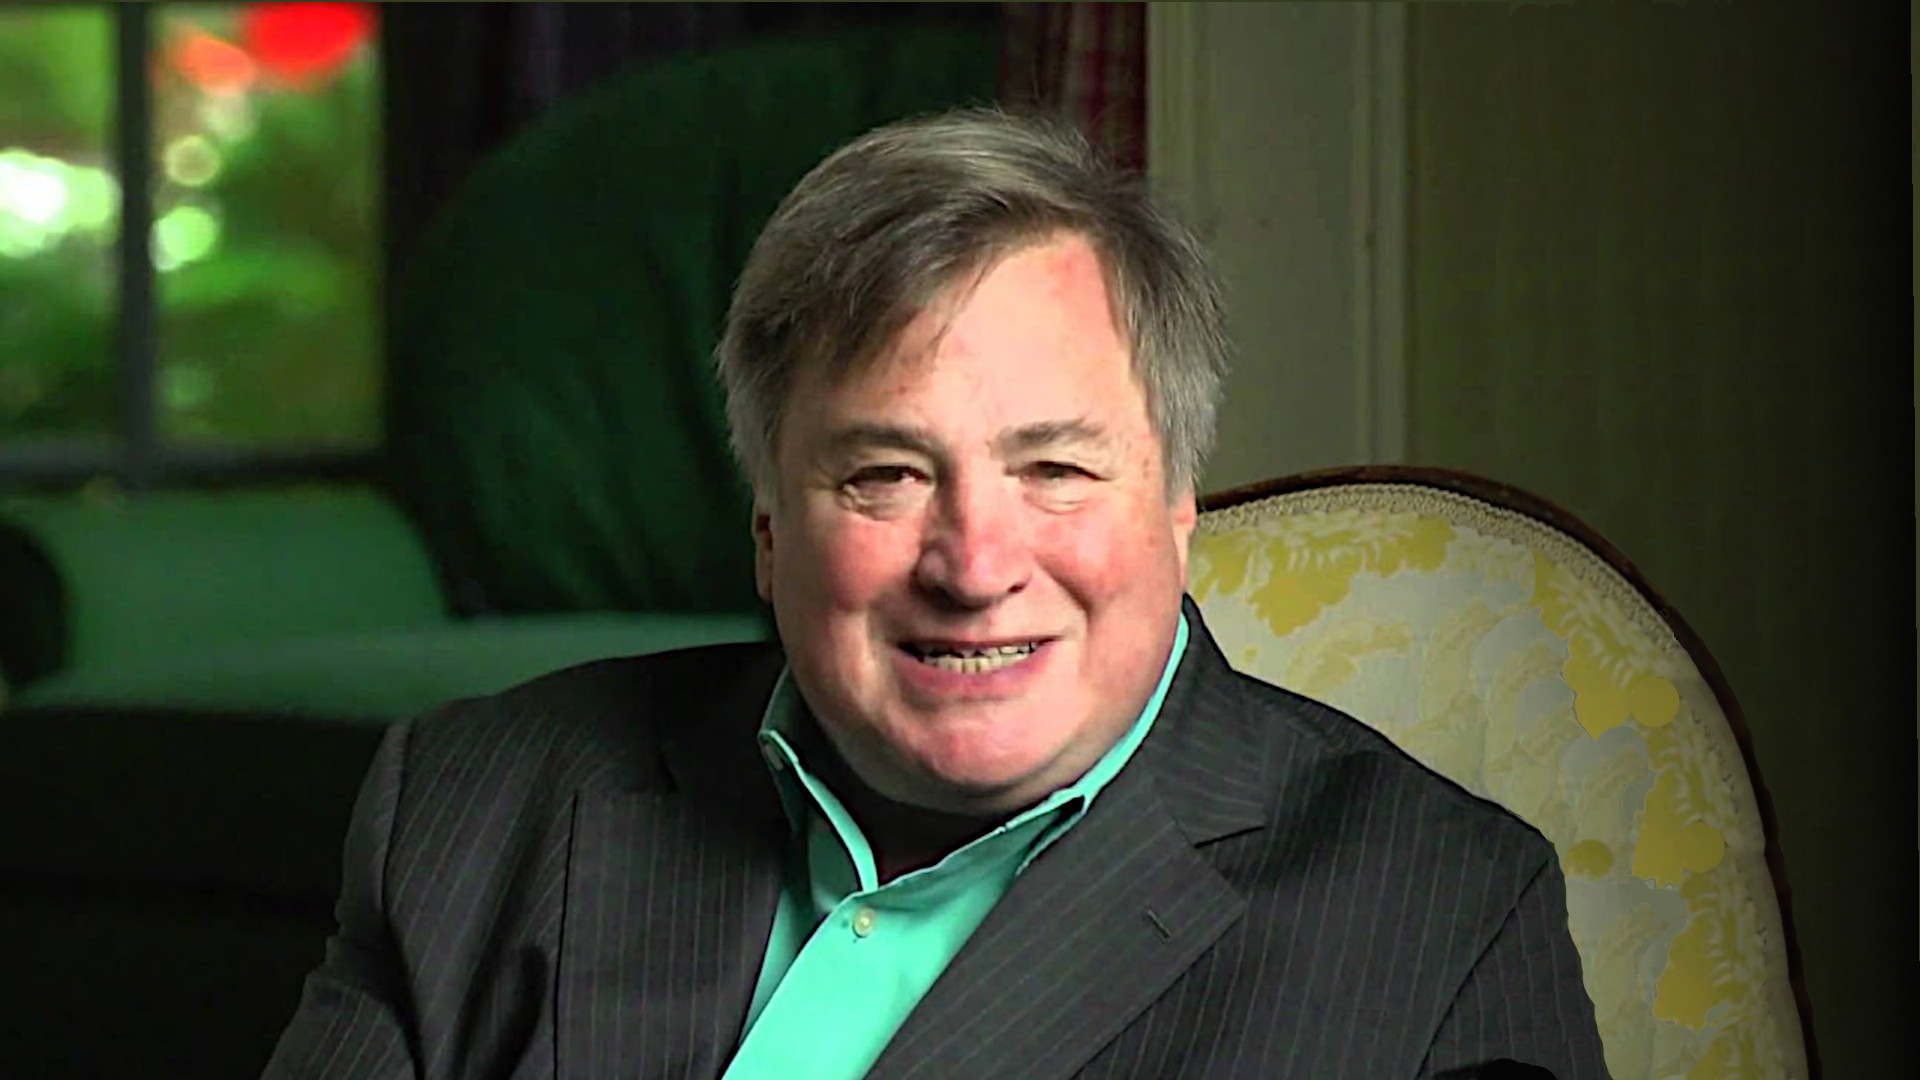 The Next Election – Dick Morris